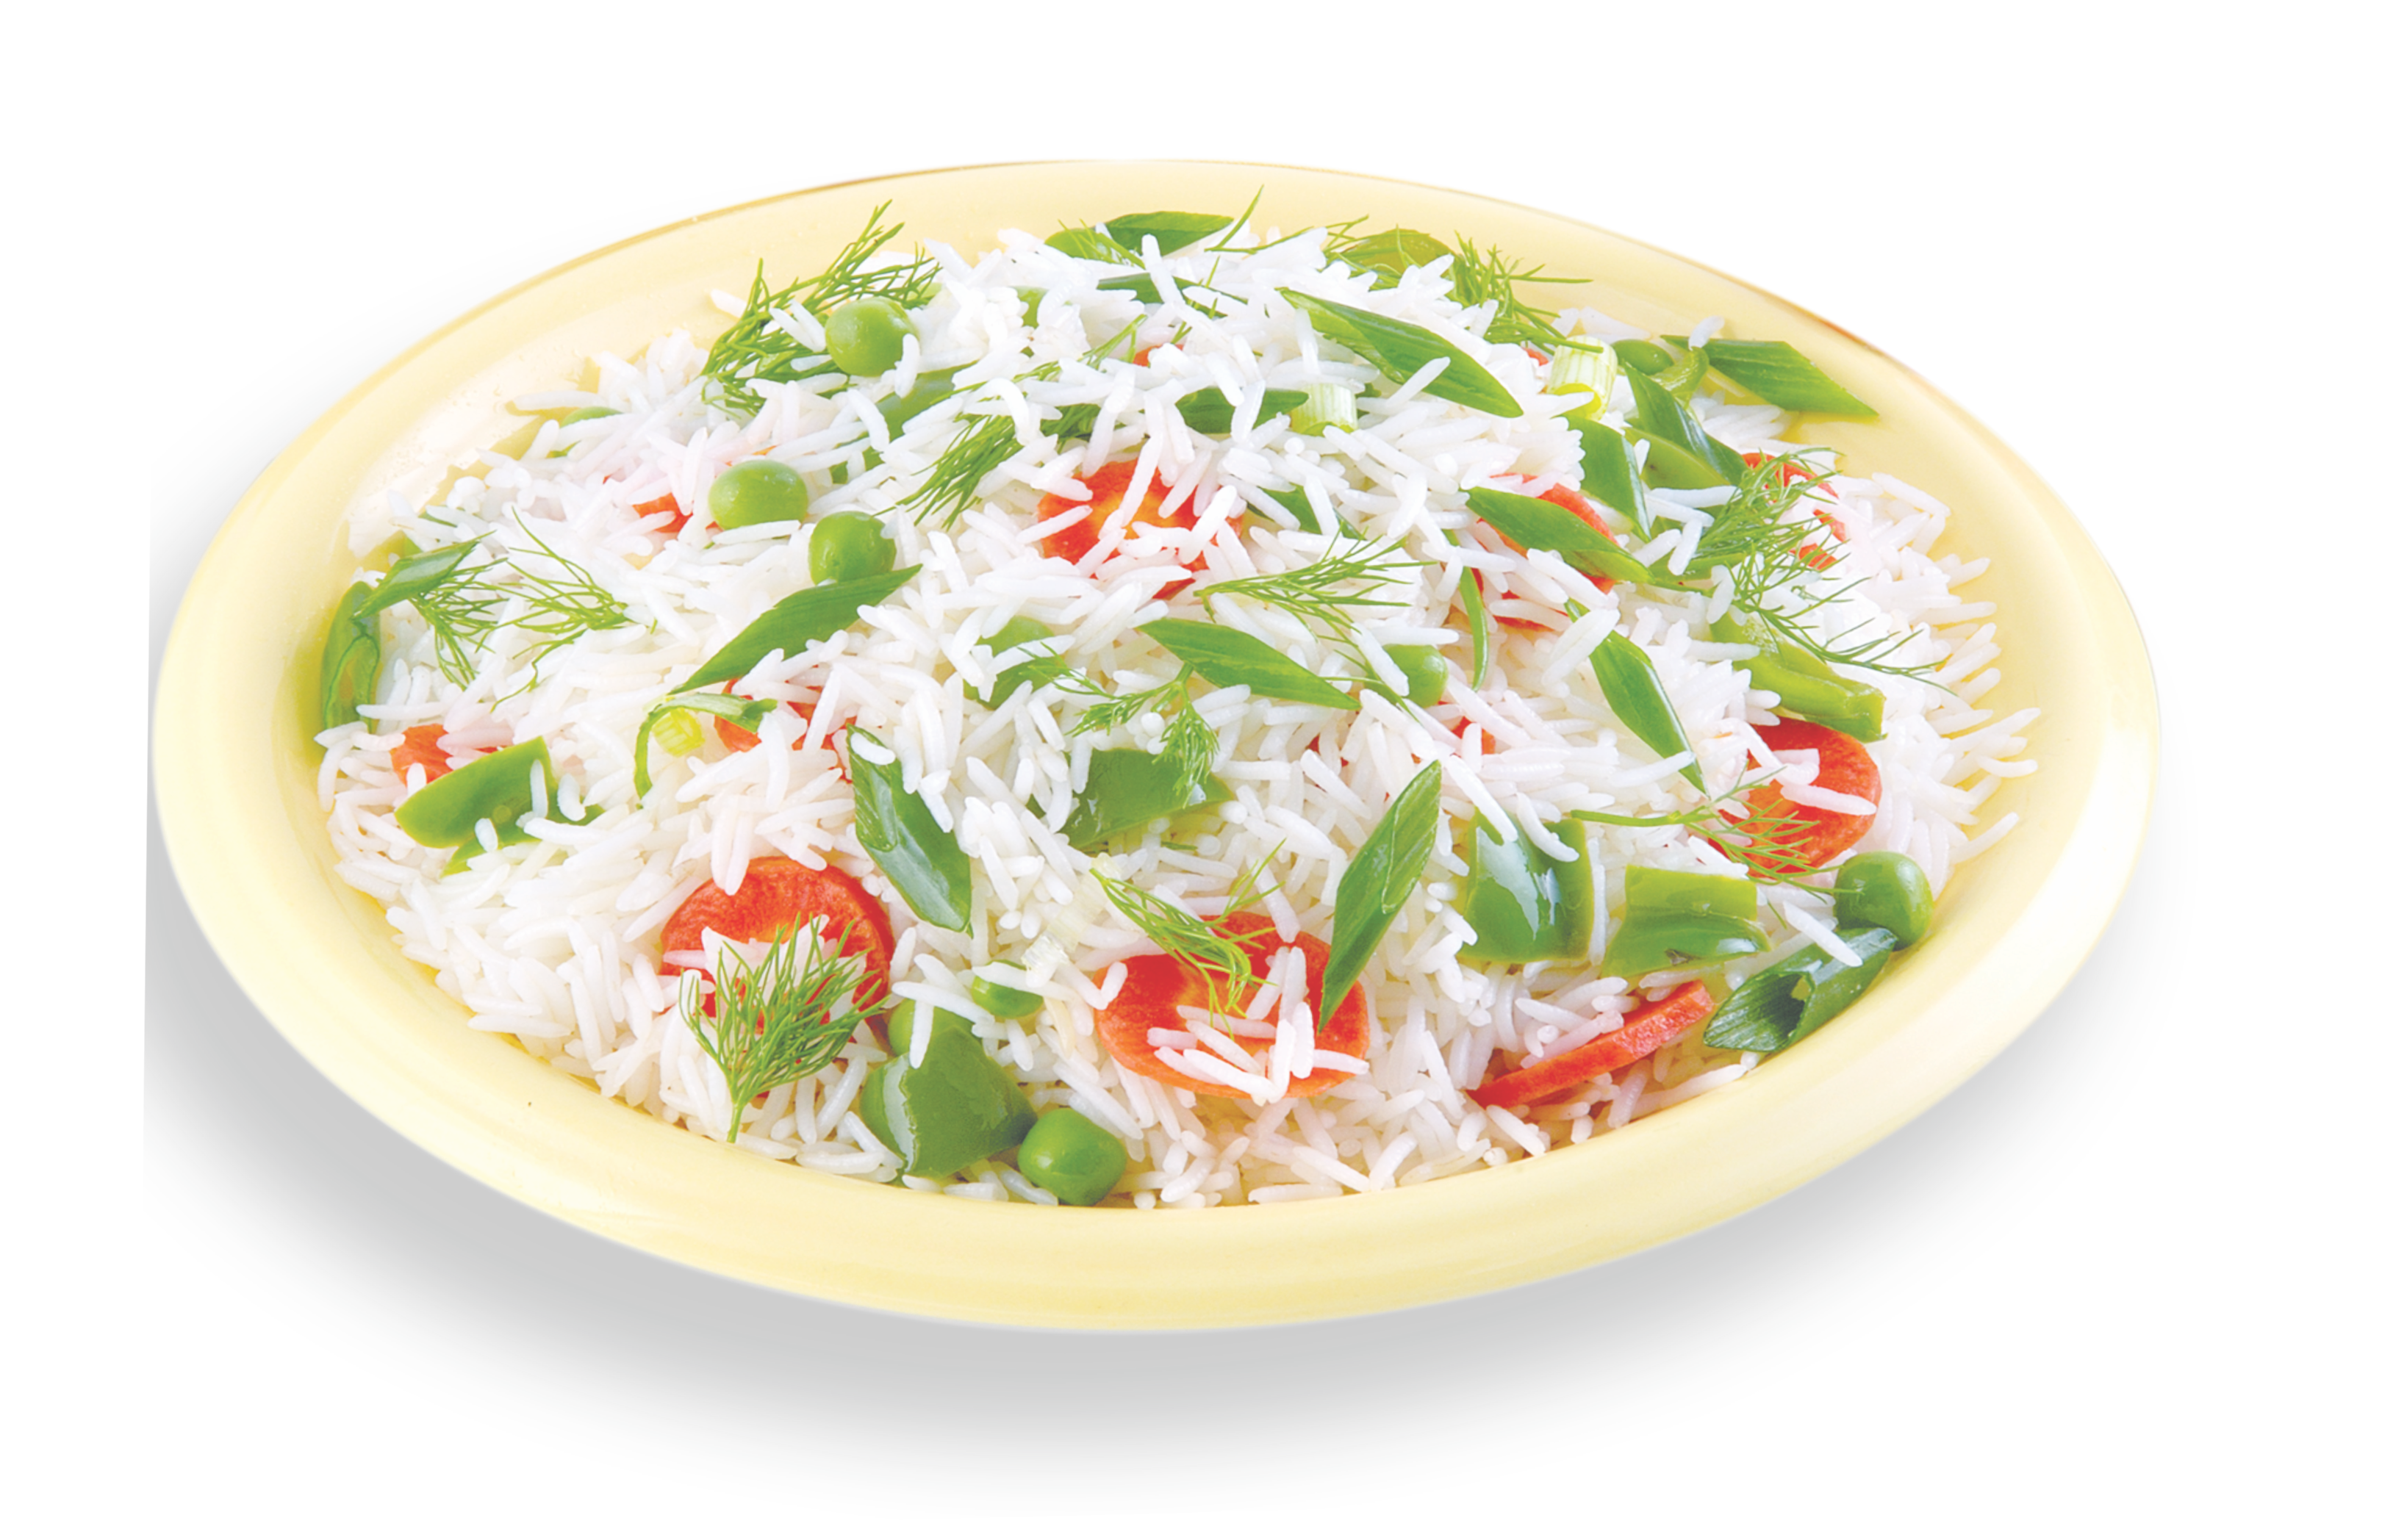 Hd png transparent images. Plate clipart plate rice